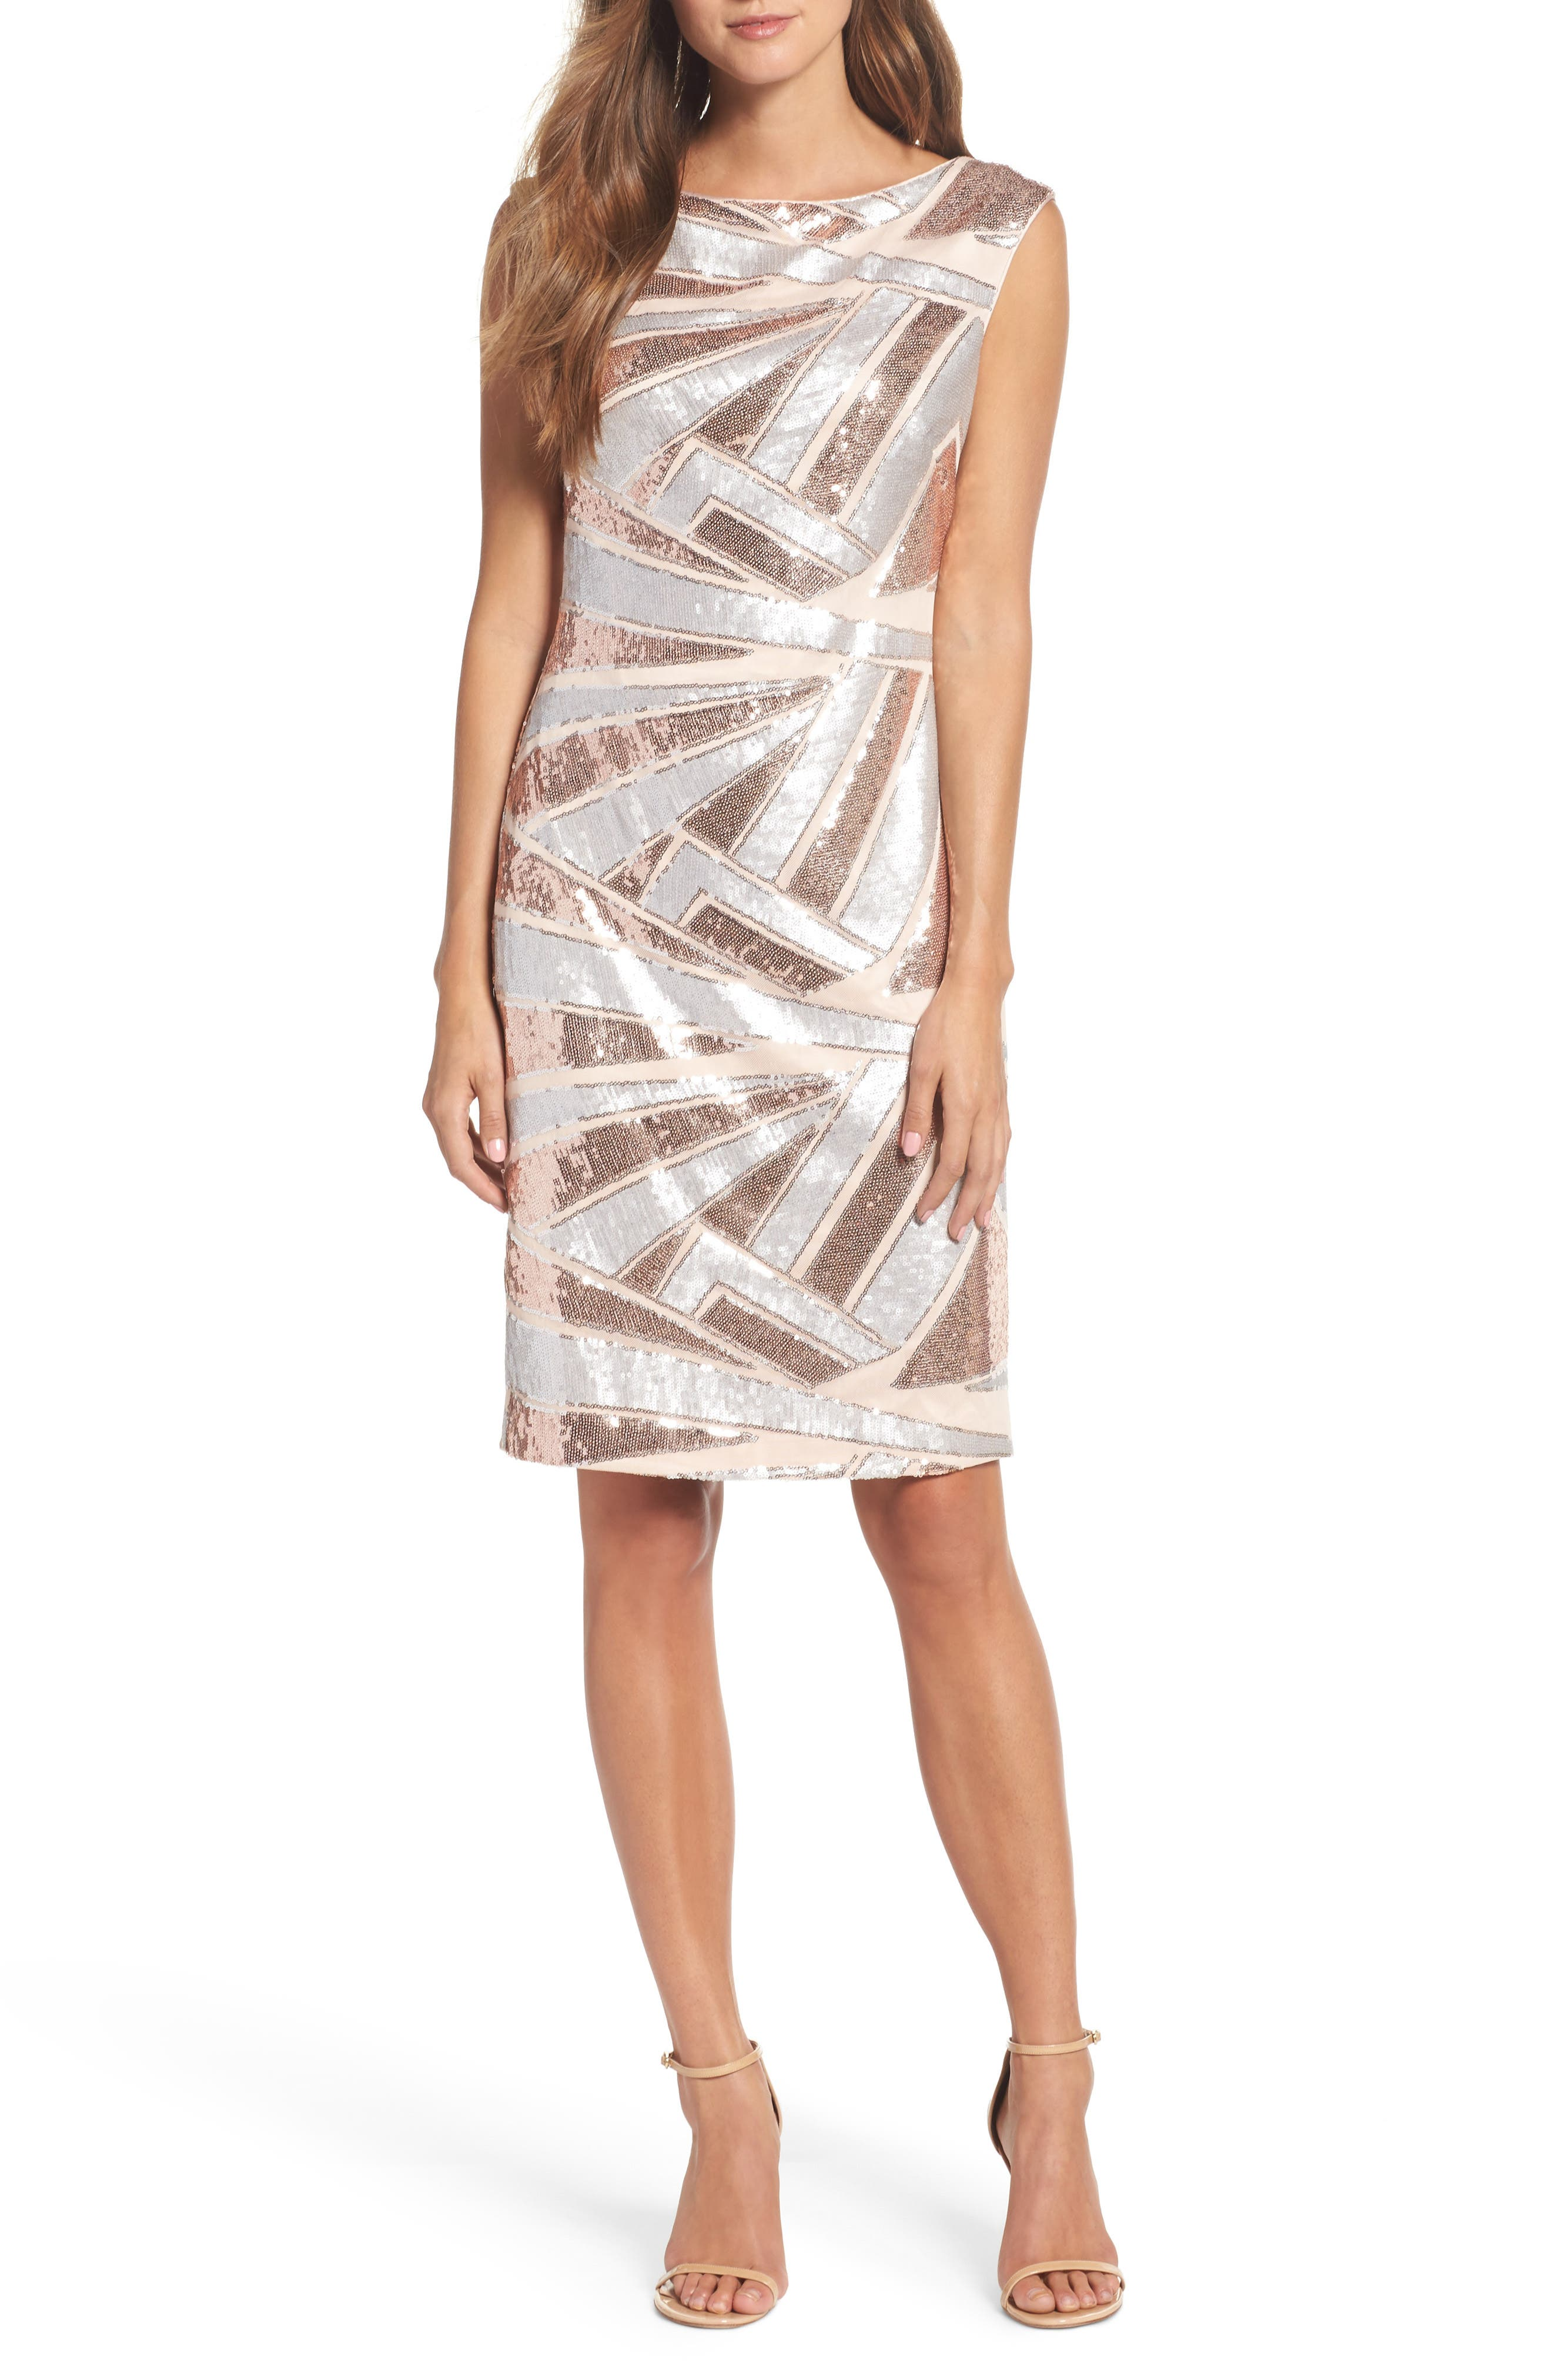 Alternate Image 1 Selected - Vince Camuto Sequin Body-Con Dress